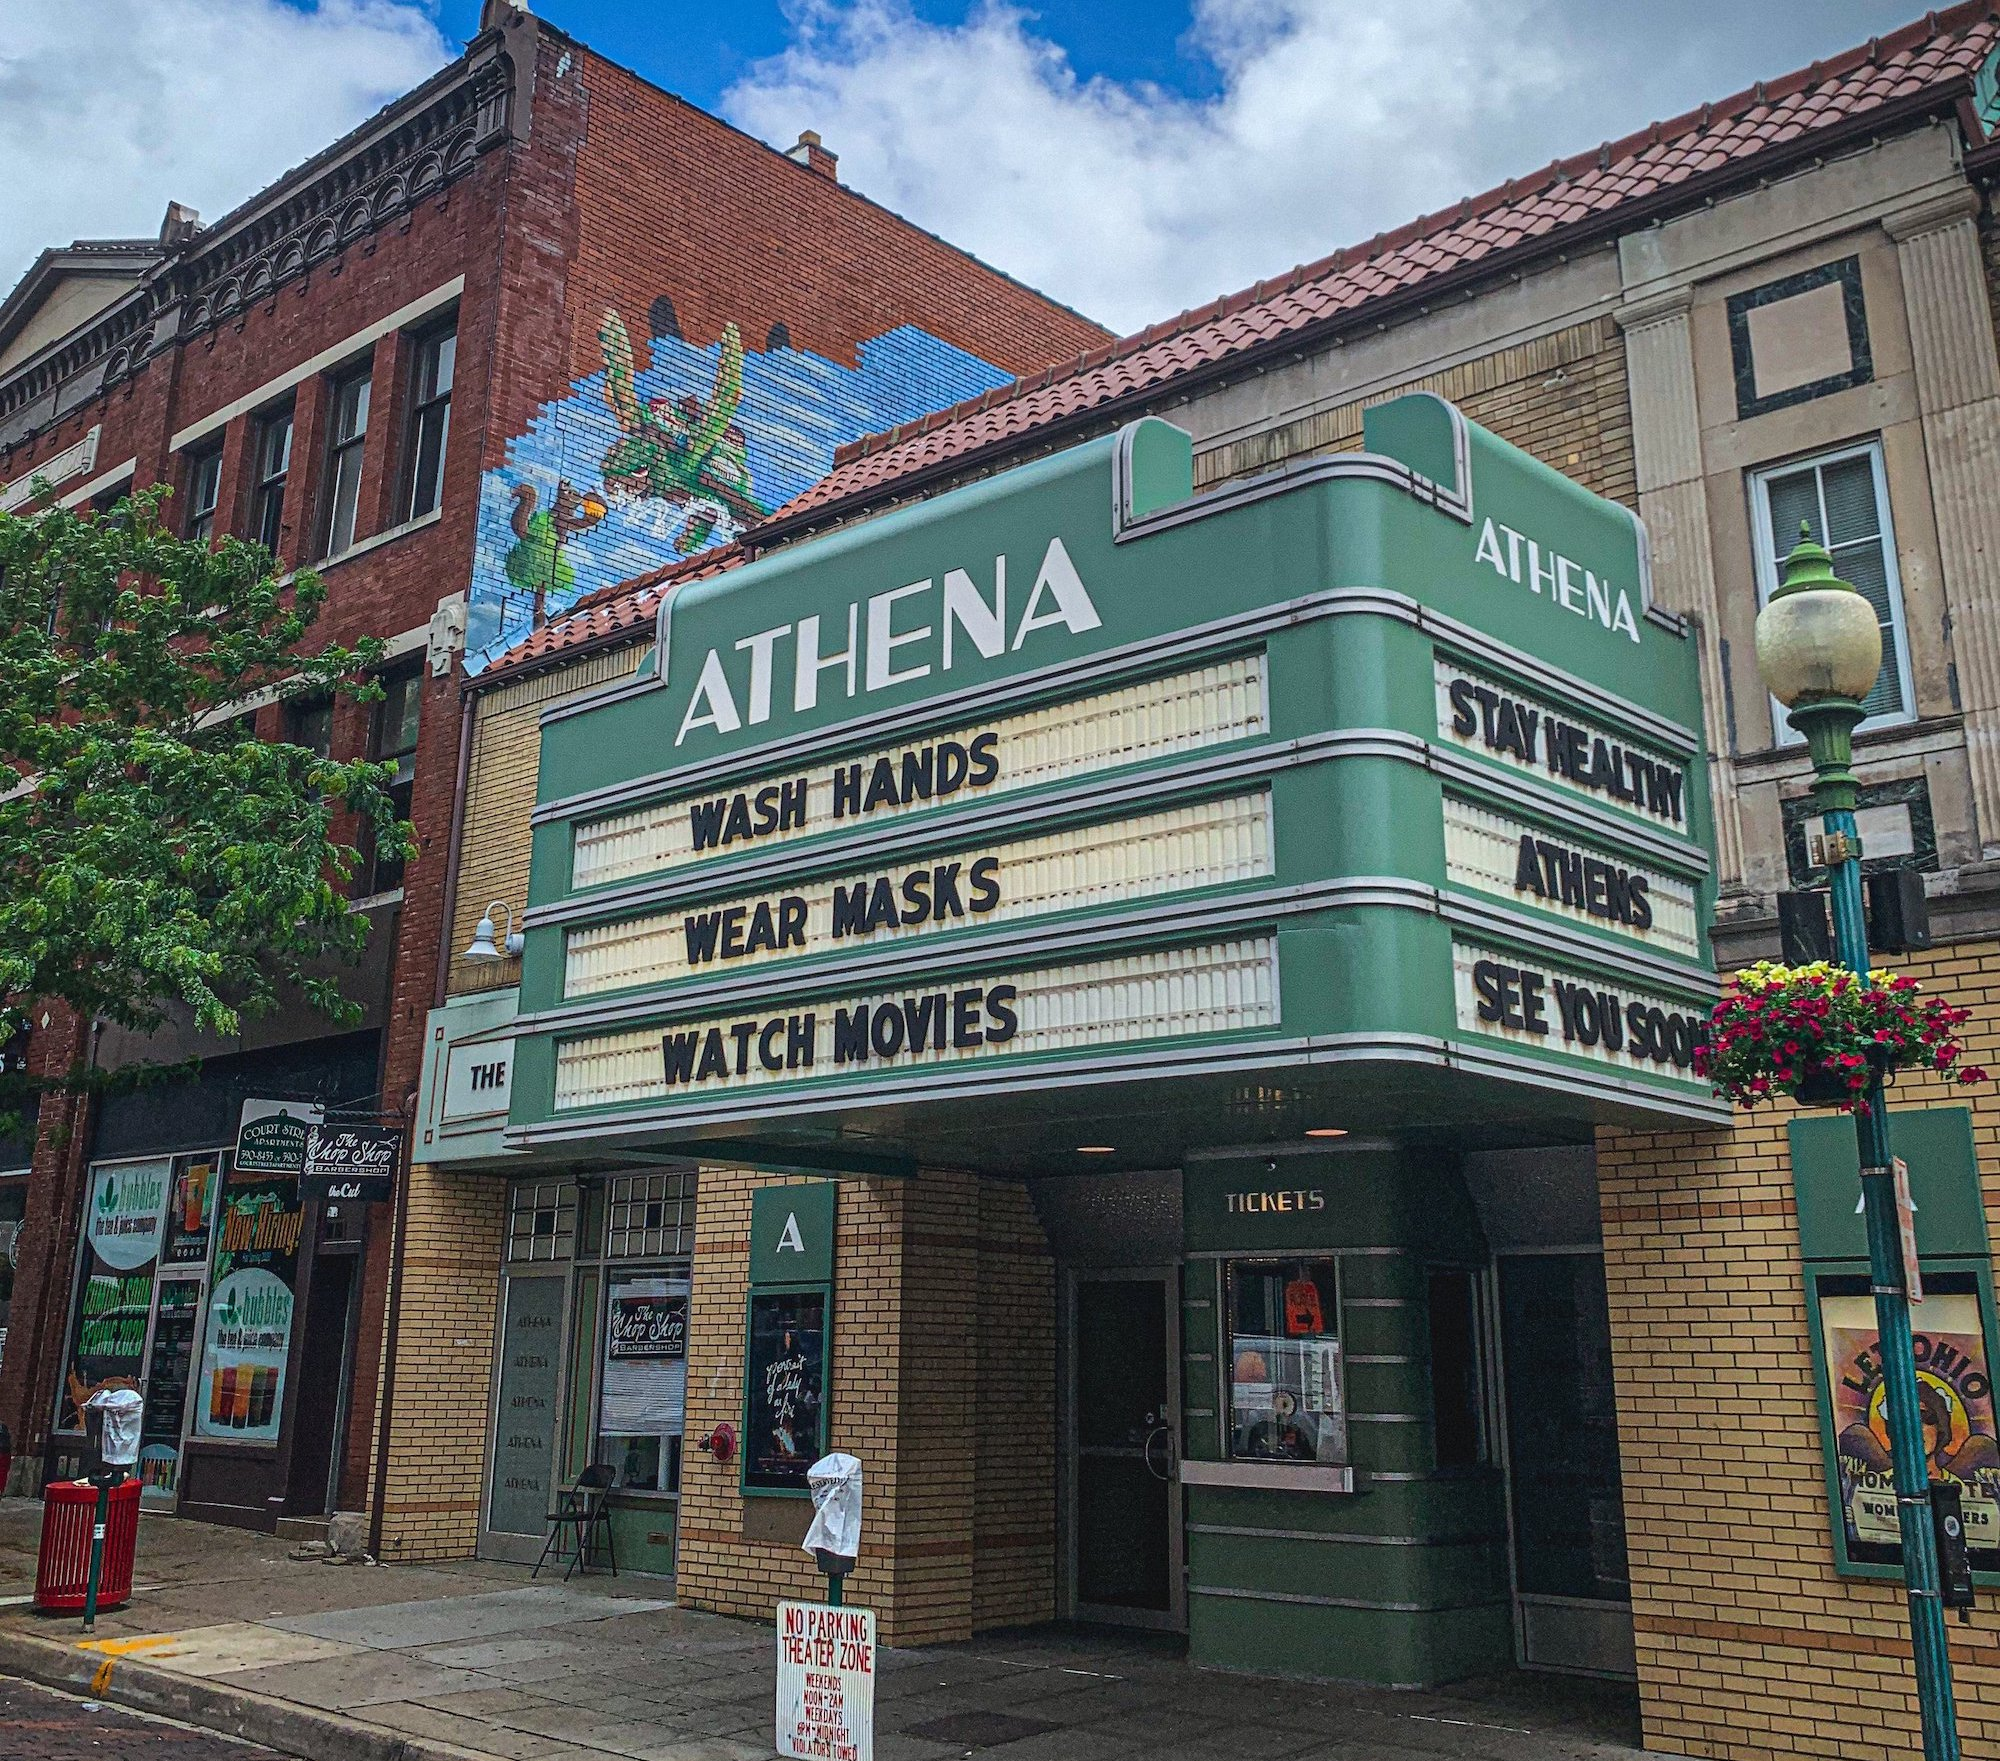 """Athena Cinema in Athens, with marquee reading """"Wash Hands - Wear Masks - Watch Movies""""  - athena 1 20copy - Athena Cinema takes Science on Screen films to outdoor Ridges space"""